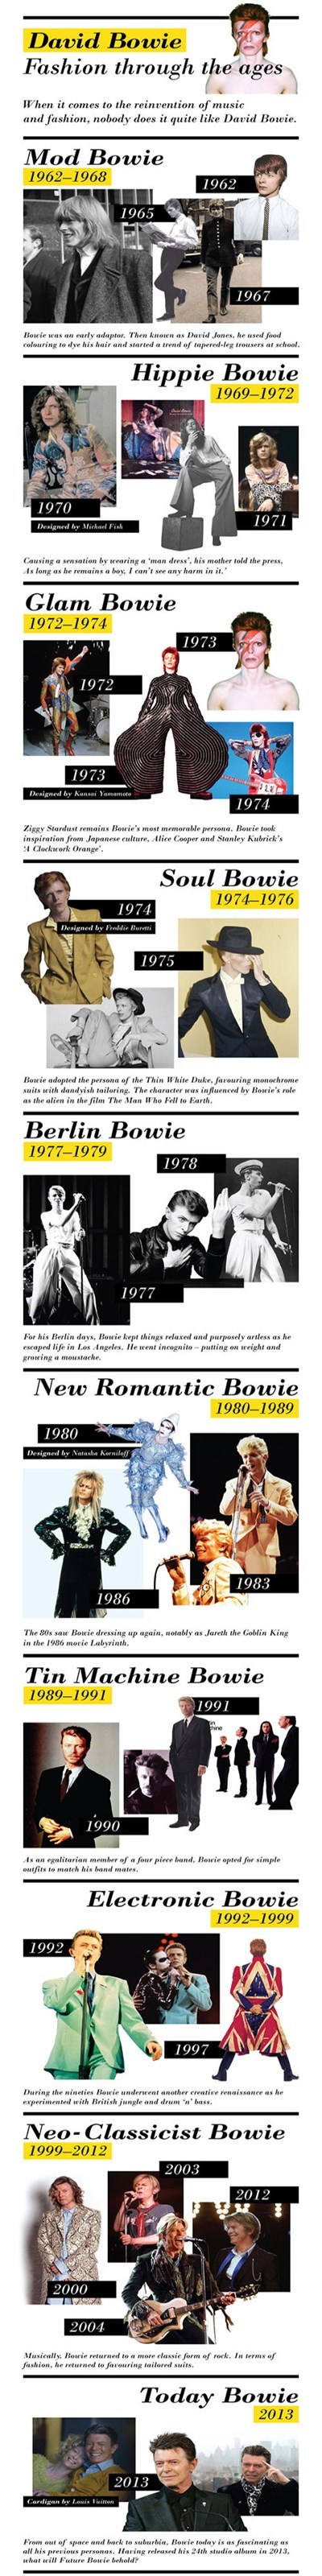 Music fashion david bowie infographic g rated - 7886010368